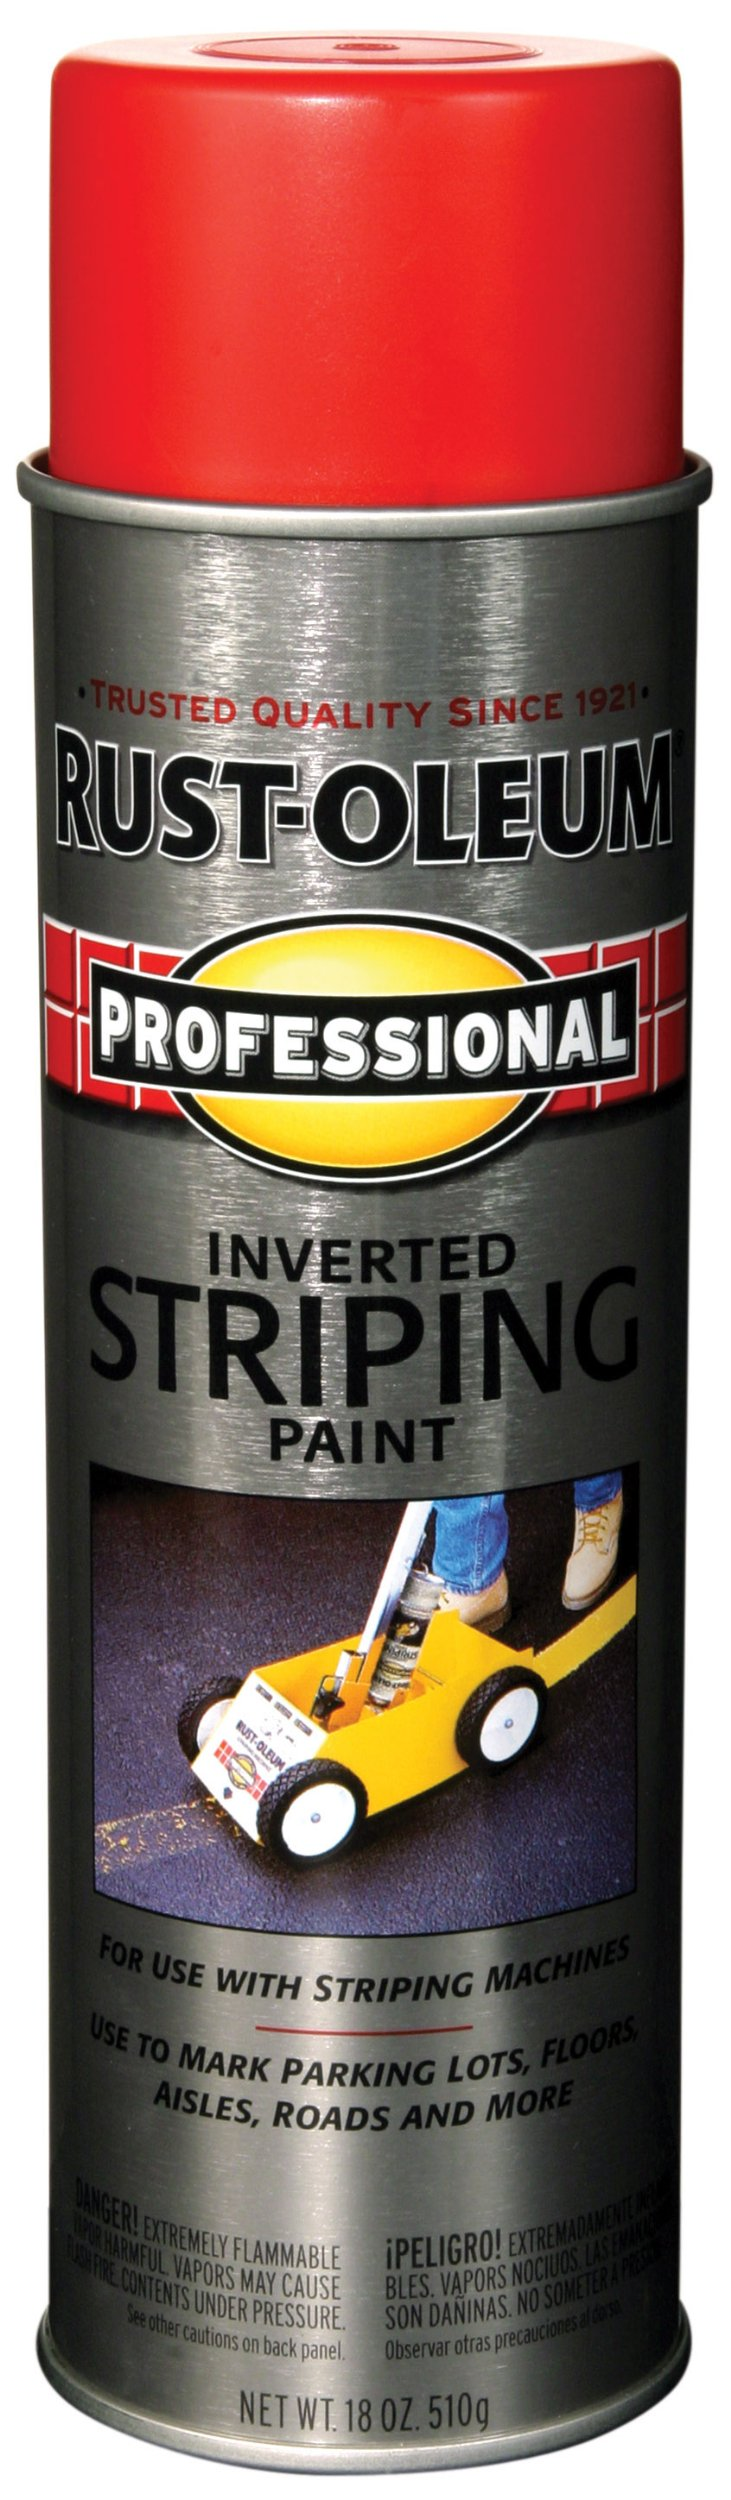 Rust-Oleum 211777 Professional Stripe Inverted Striping Spray Paint, 18 oz, Red